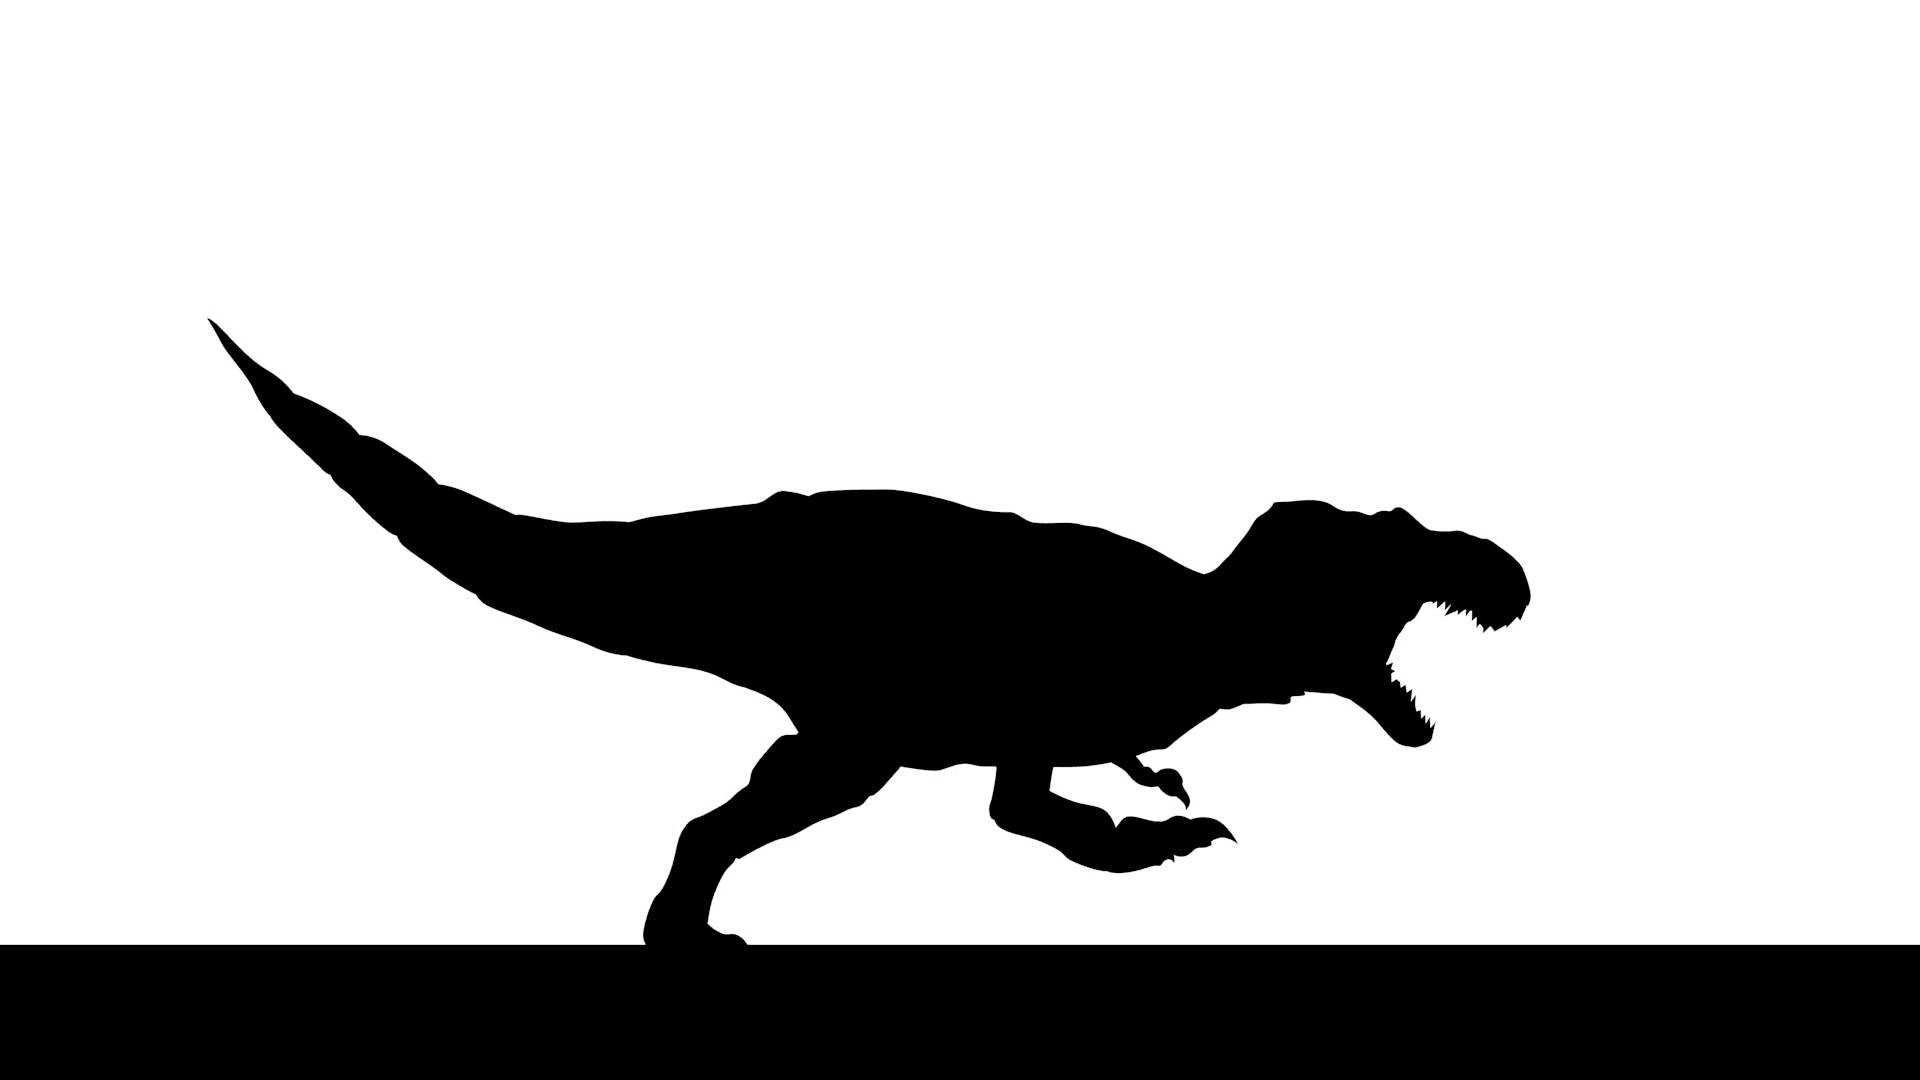 1920x1080 T Rex Silhouette Stock Vector Art Illustration Image Brilliant